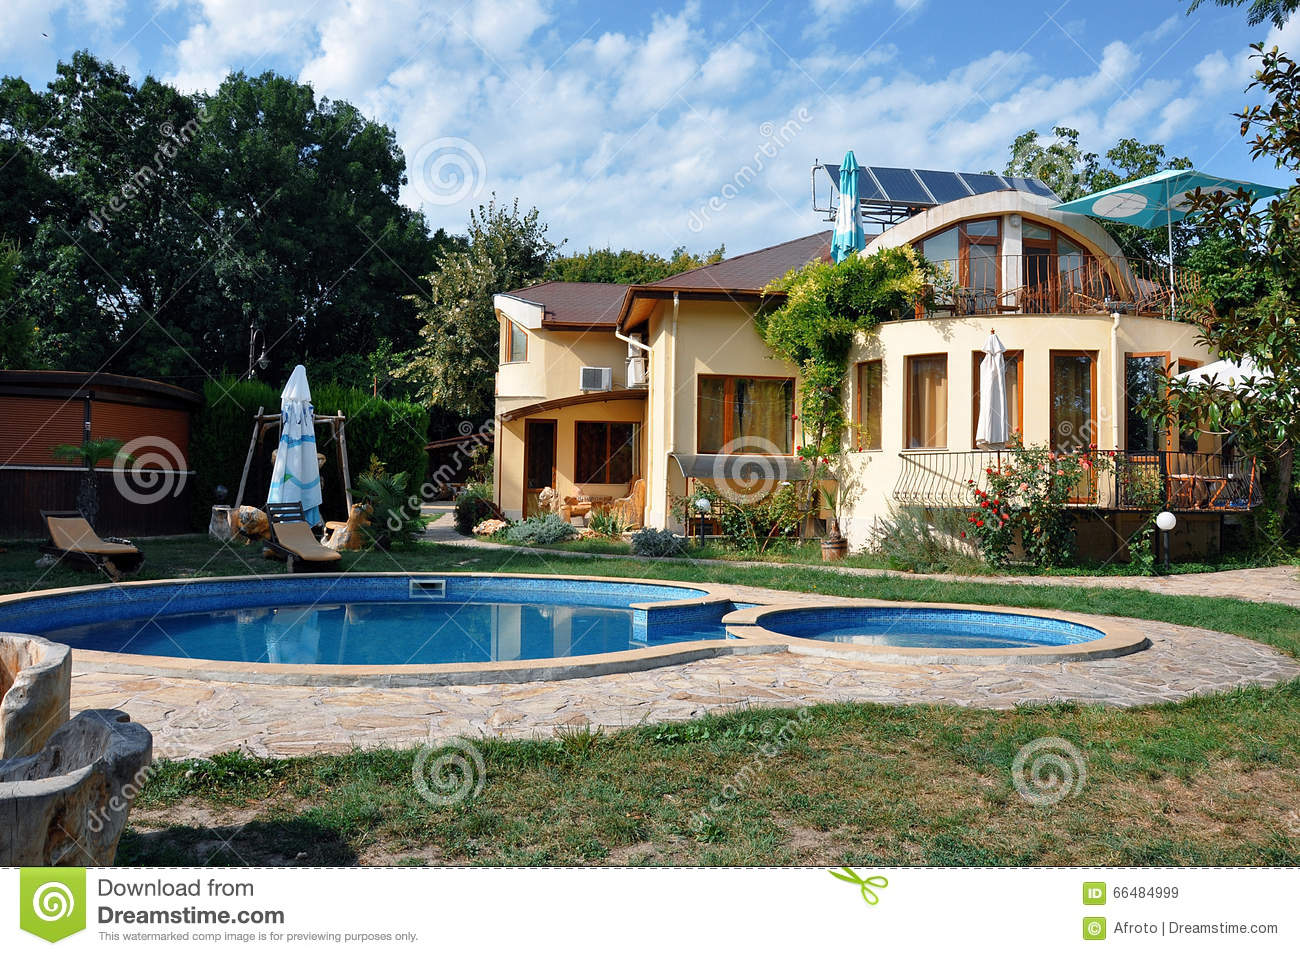 House with swimming pool stock image image of building for Pool and garden house plans